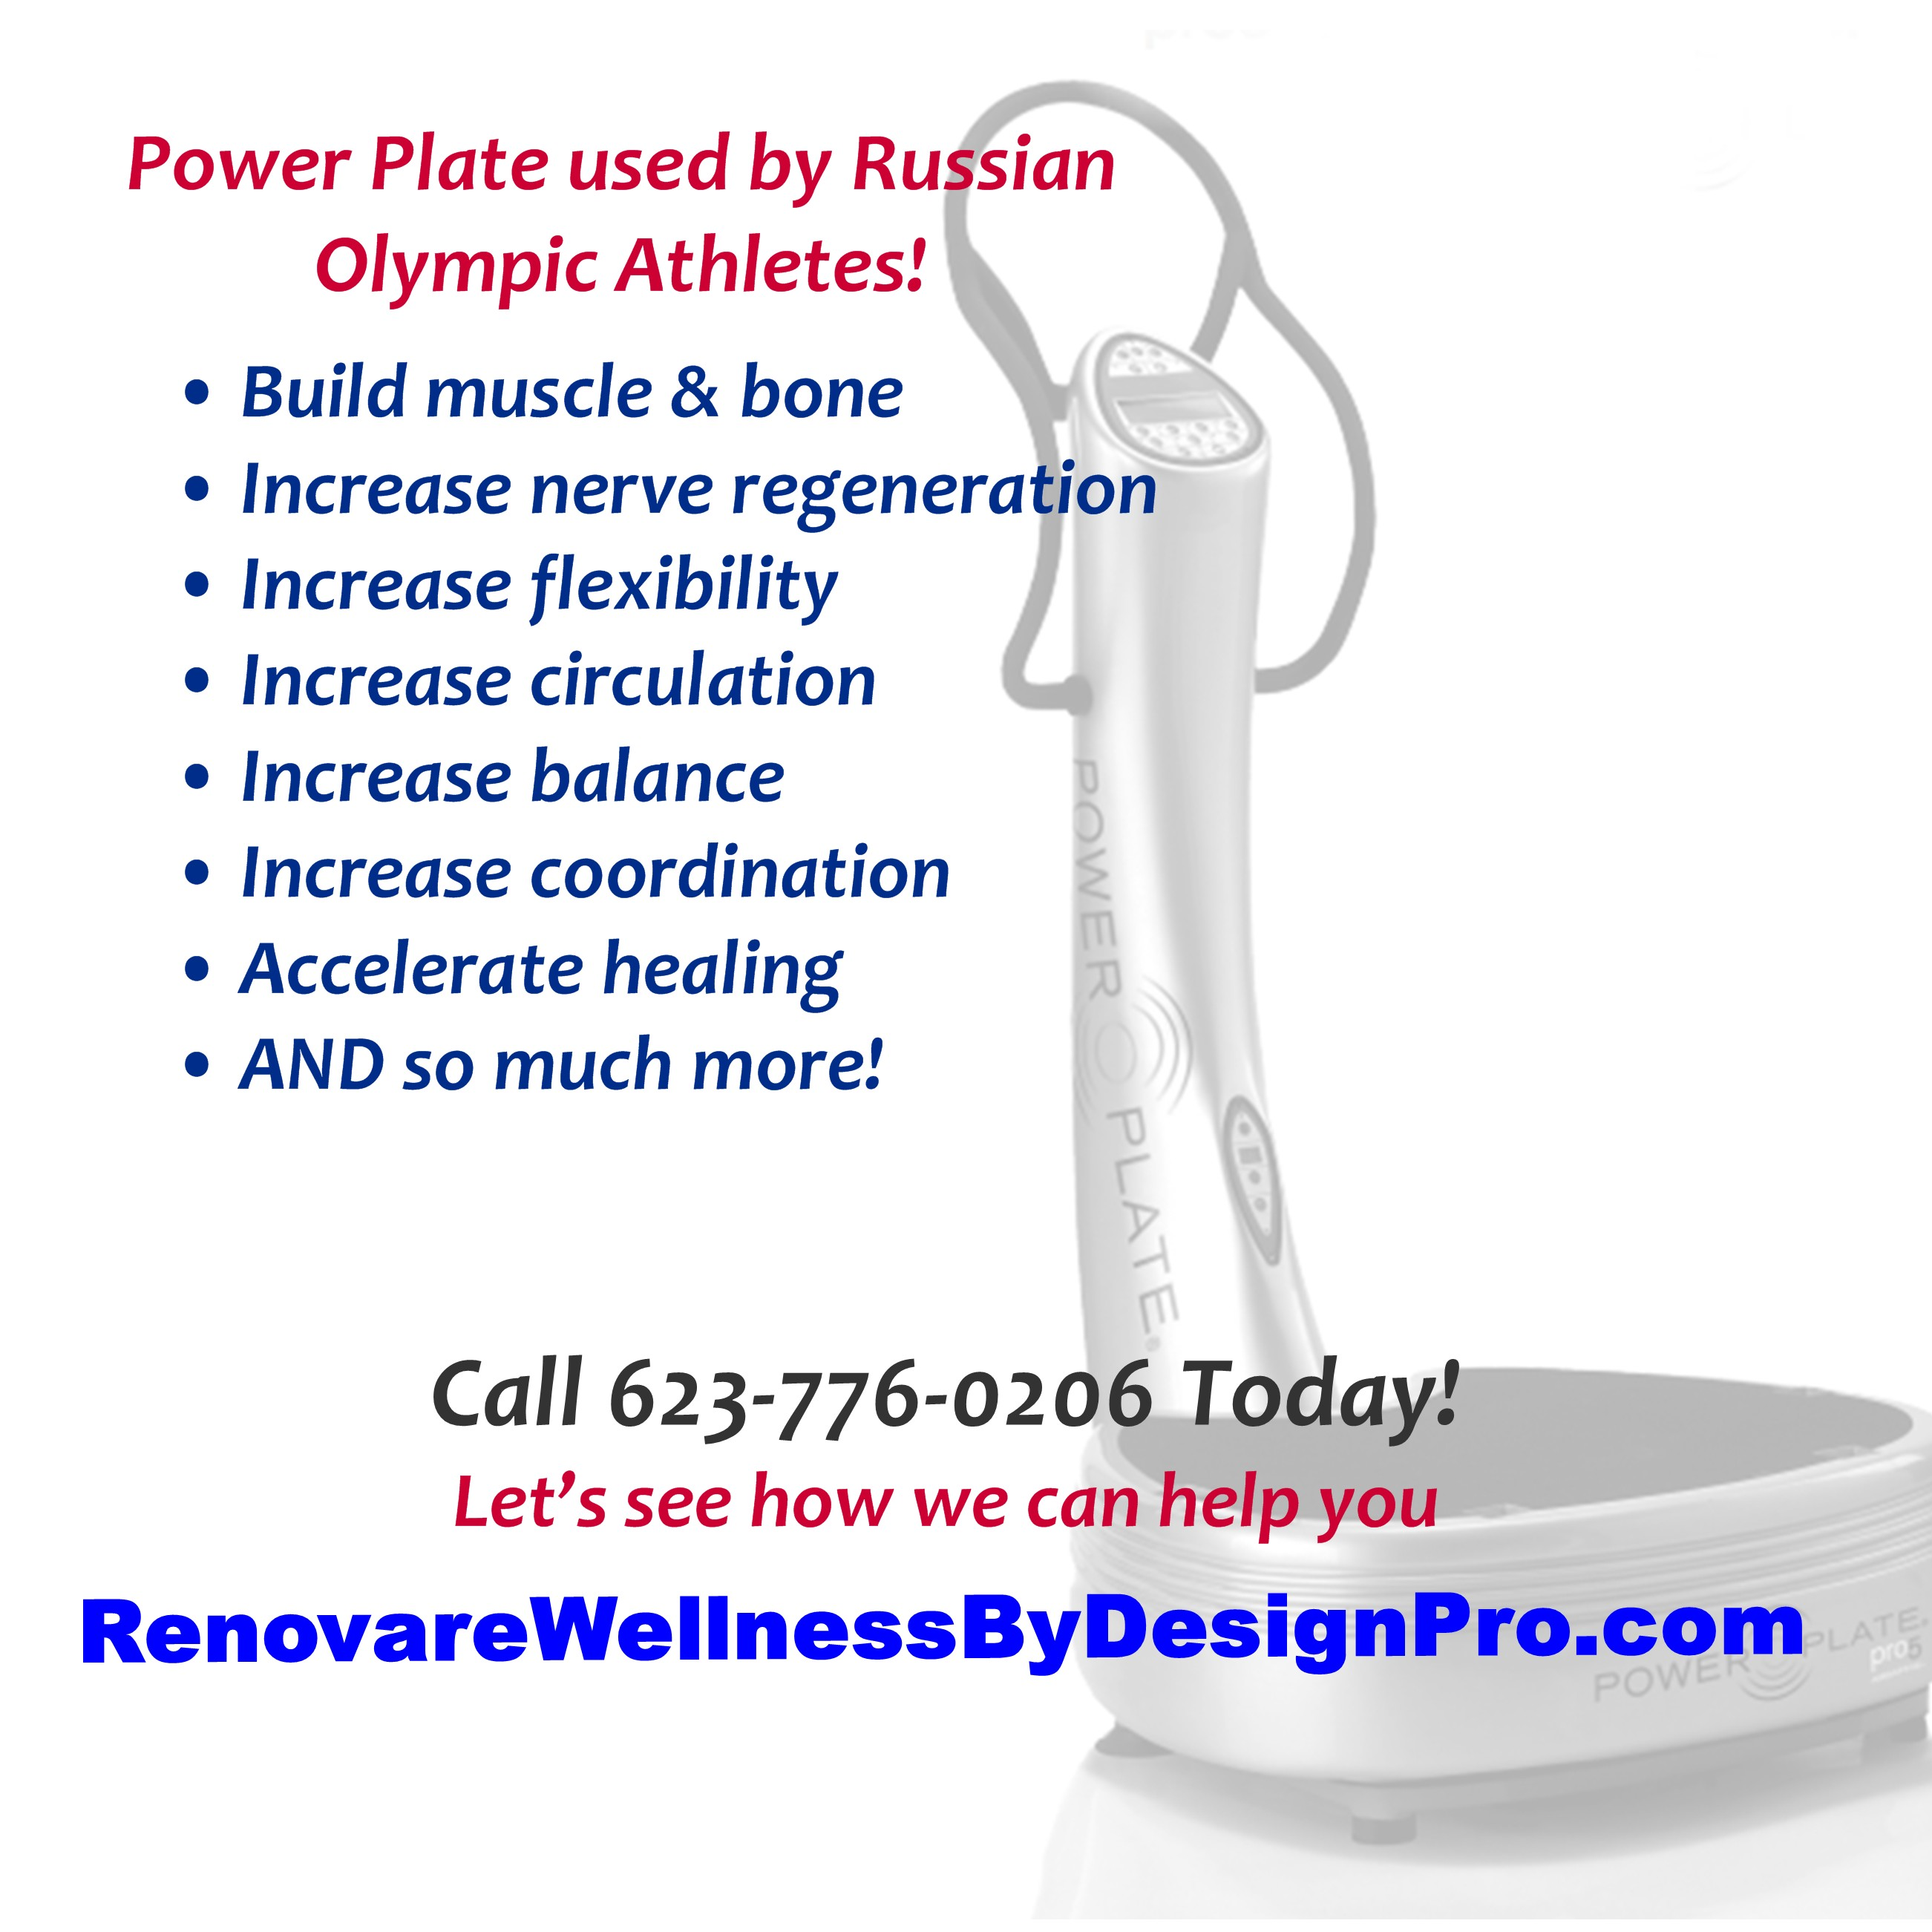 WBD Power Plate Osteopenia Increase Metabolism Osteoporosis Weight Loss Tips Workout Plans